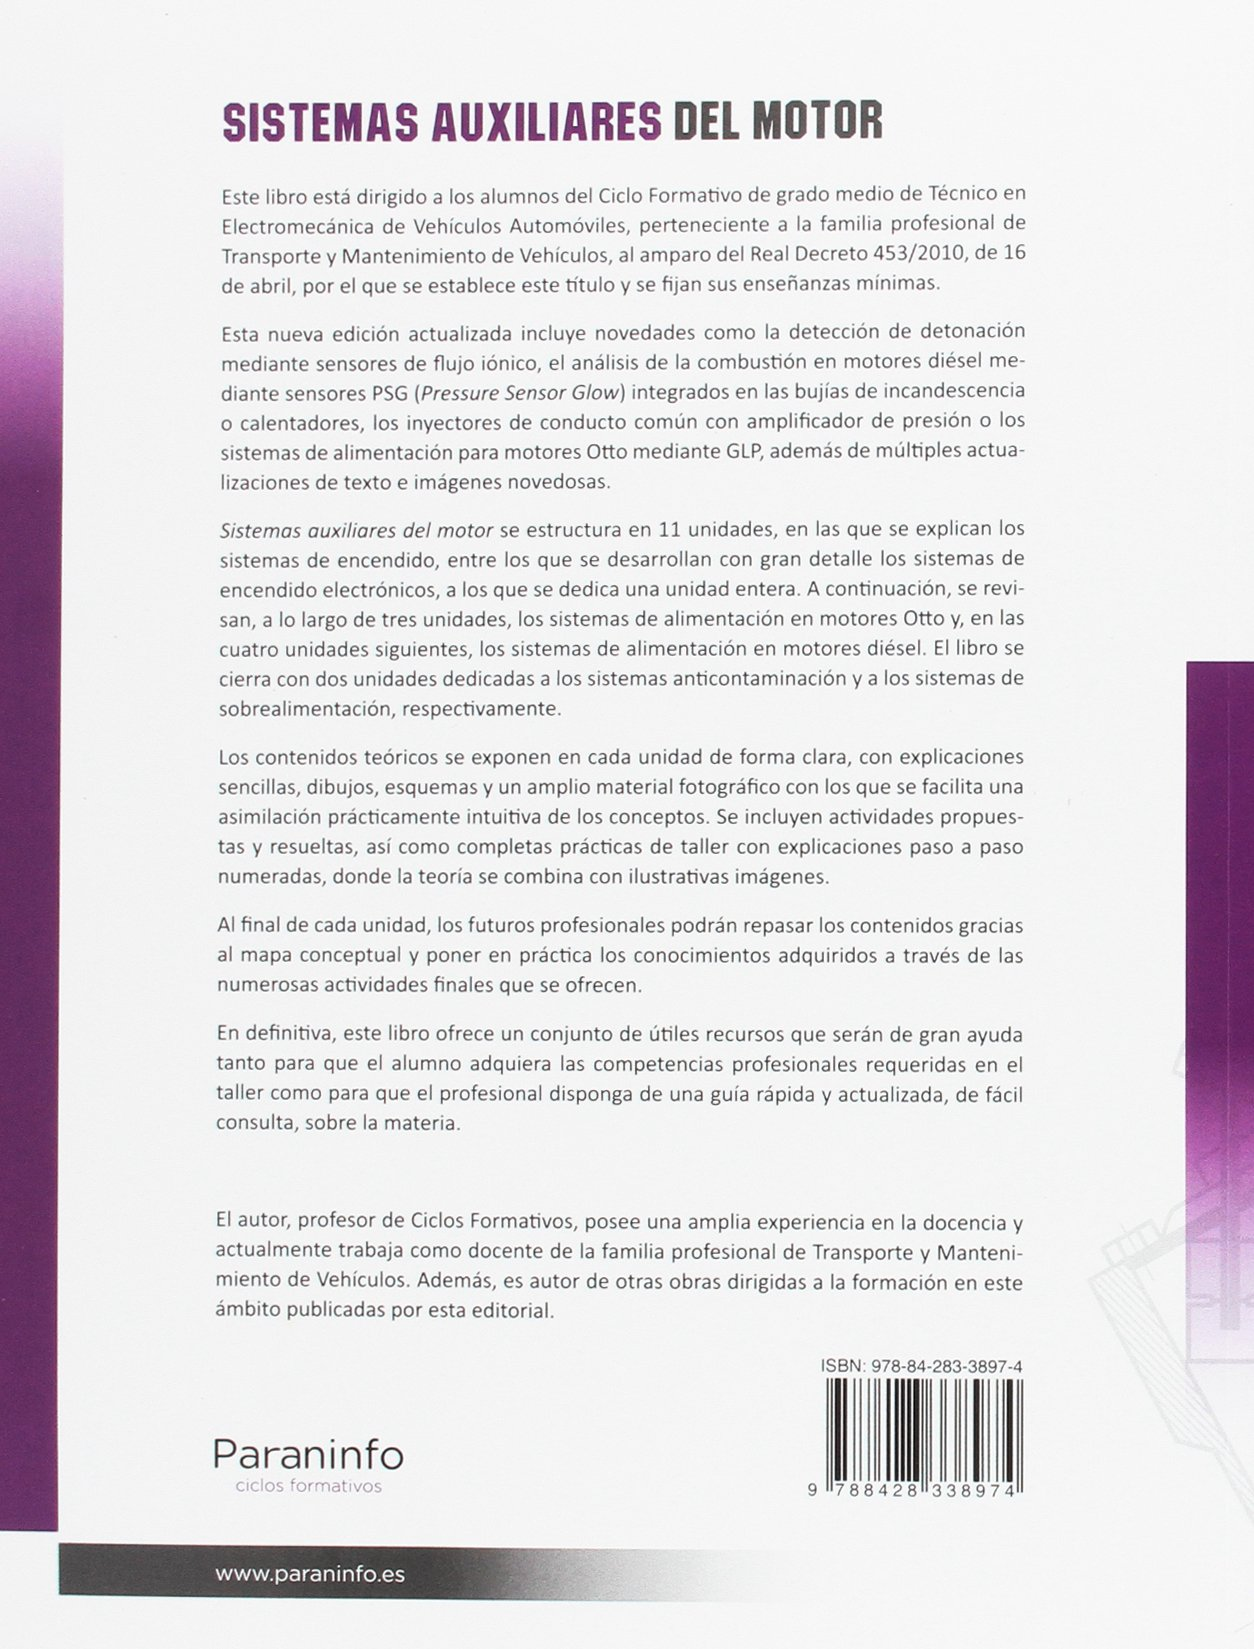 Sistemas auxiliares del motor: MIGUEL ANGEL PEREZ BELLO: 9788428338974: Amazon.com: Books